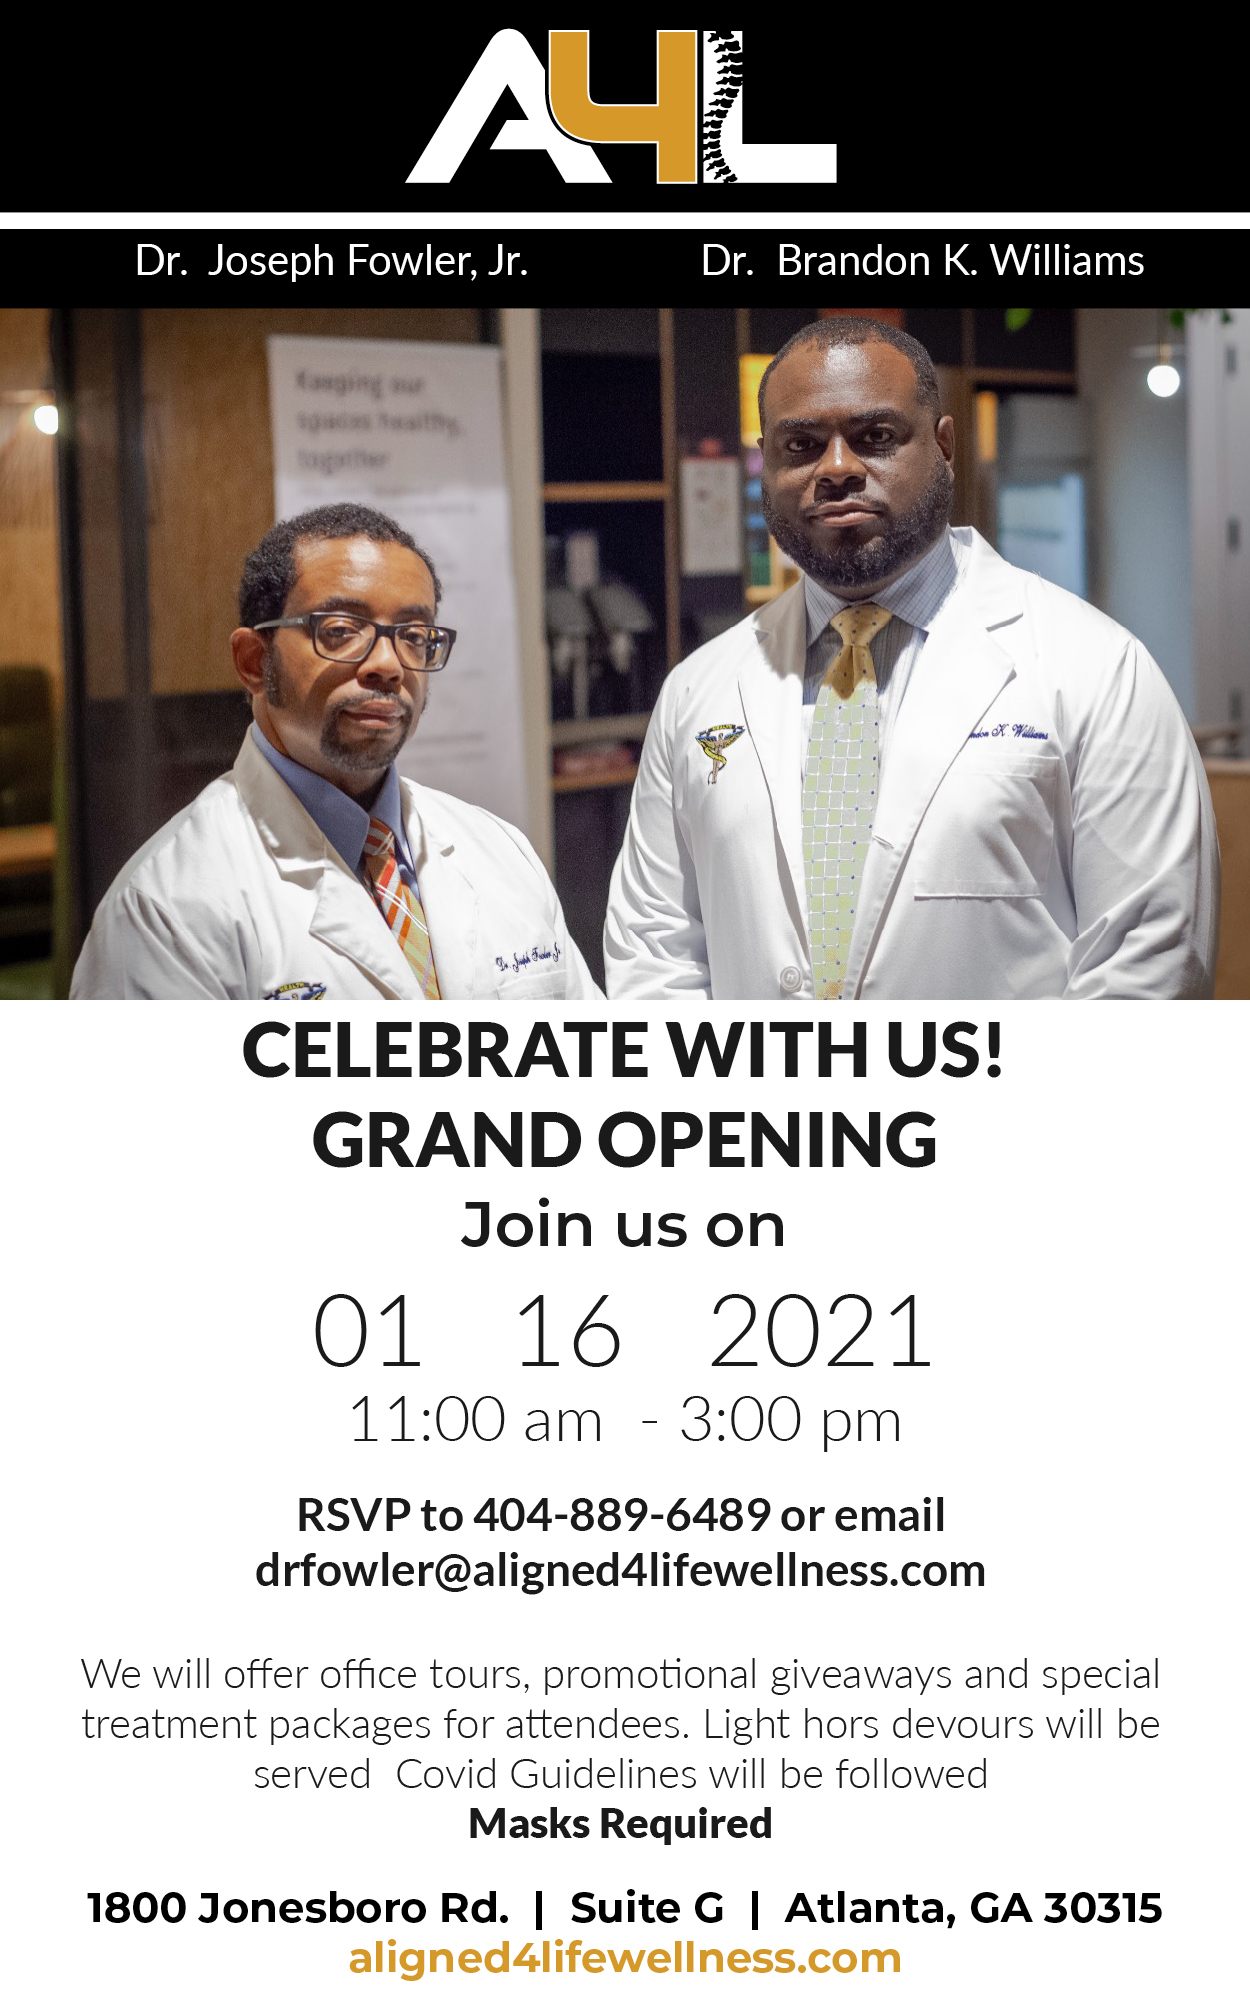 In Response to Covid-19 Wrecking Havoc on Black and Brown Communities Two Black Chiropractors in Atlanta are Changing the Face of Health and Wellness